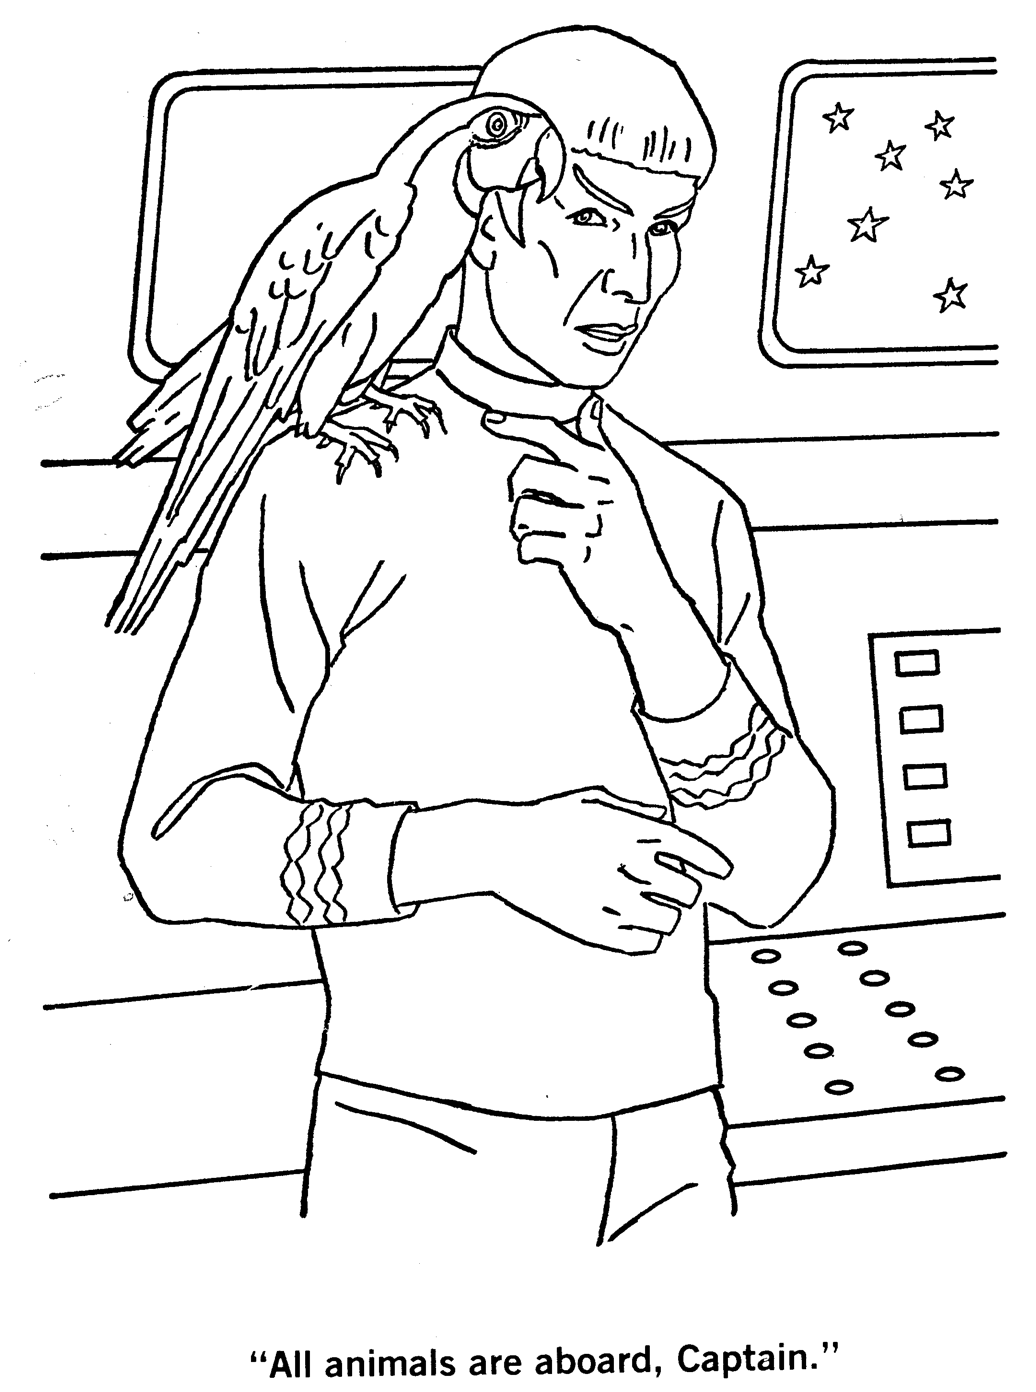 Star Trek Coloring Pages Free